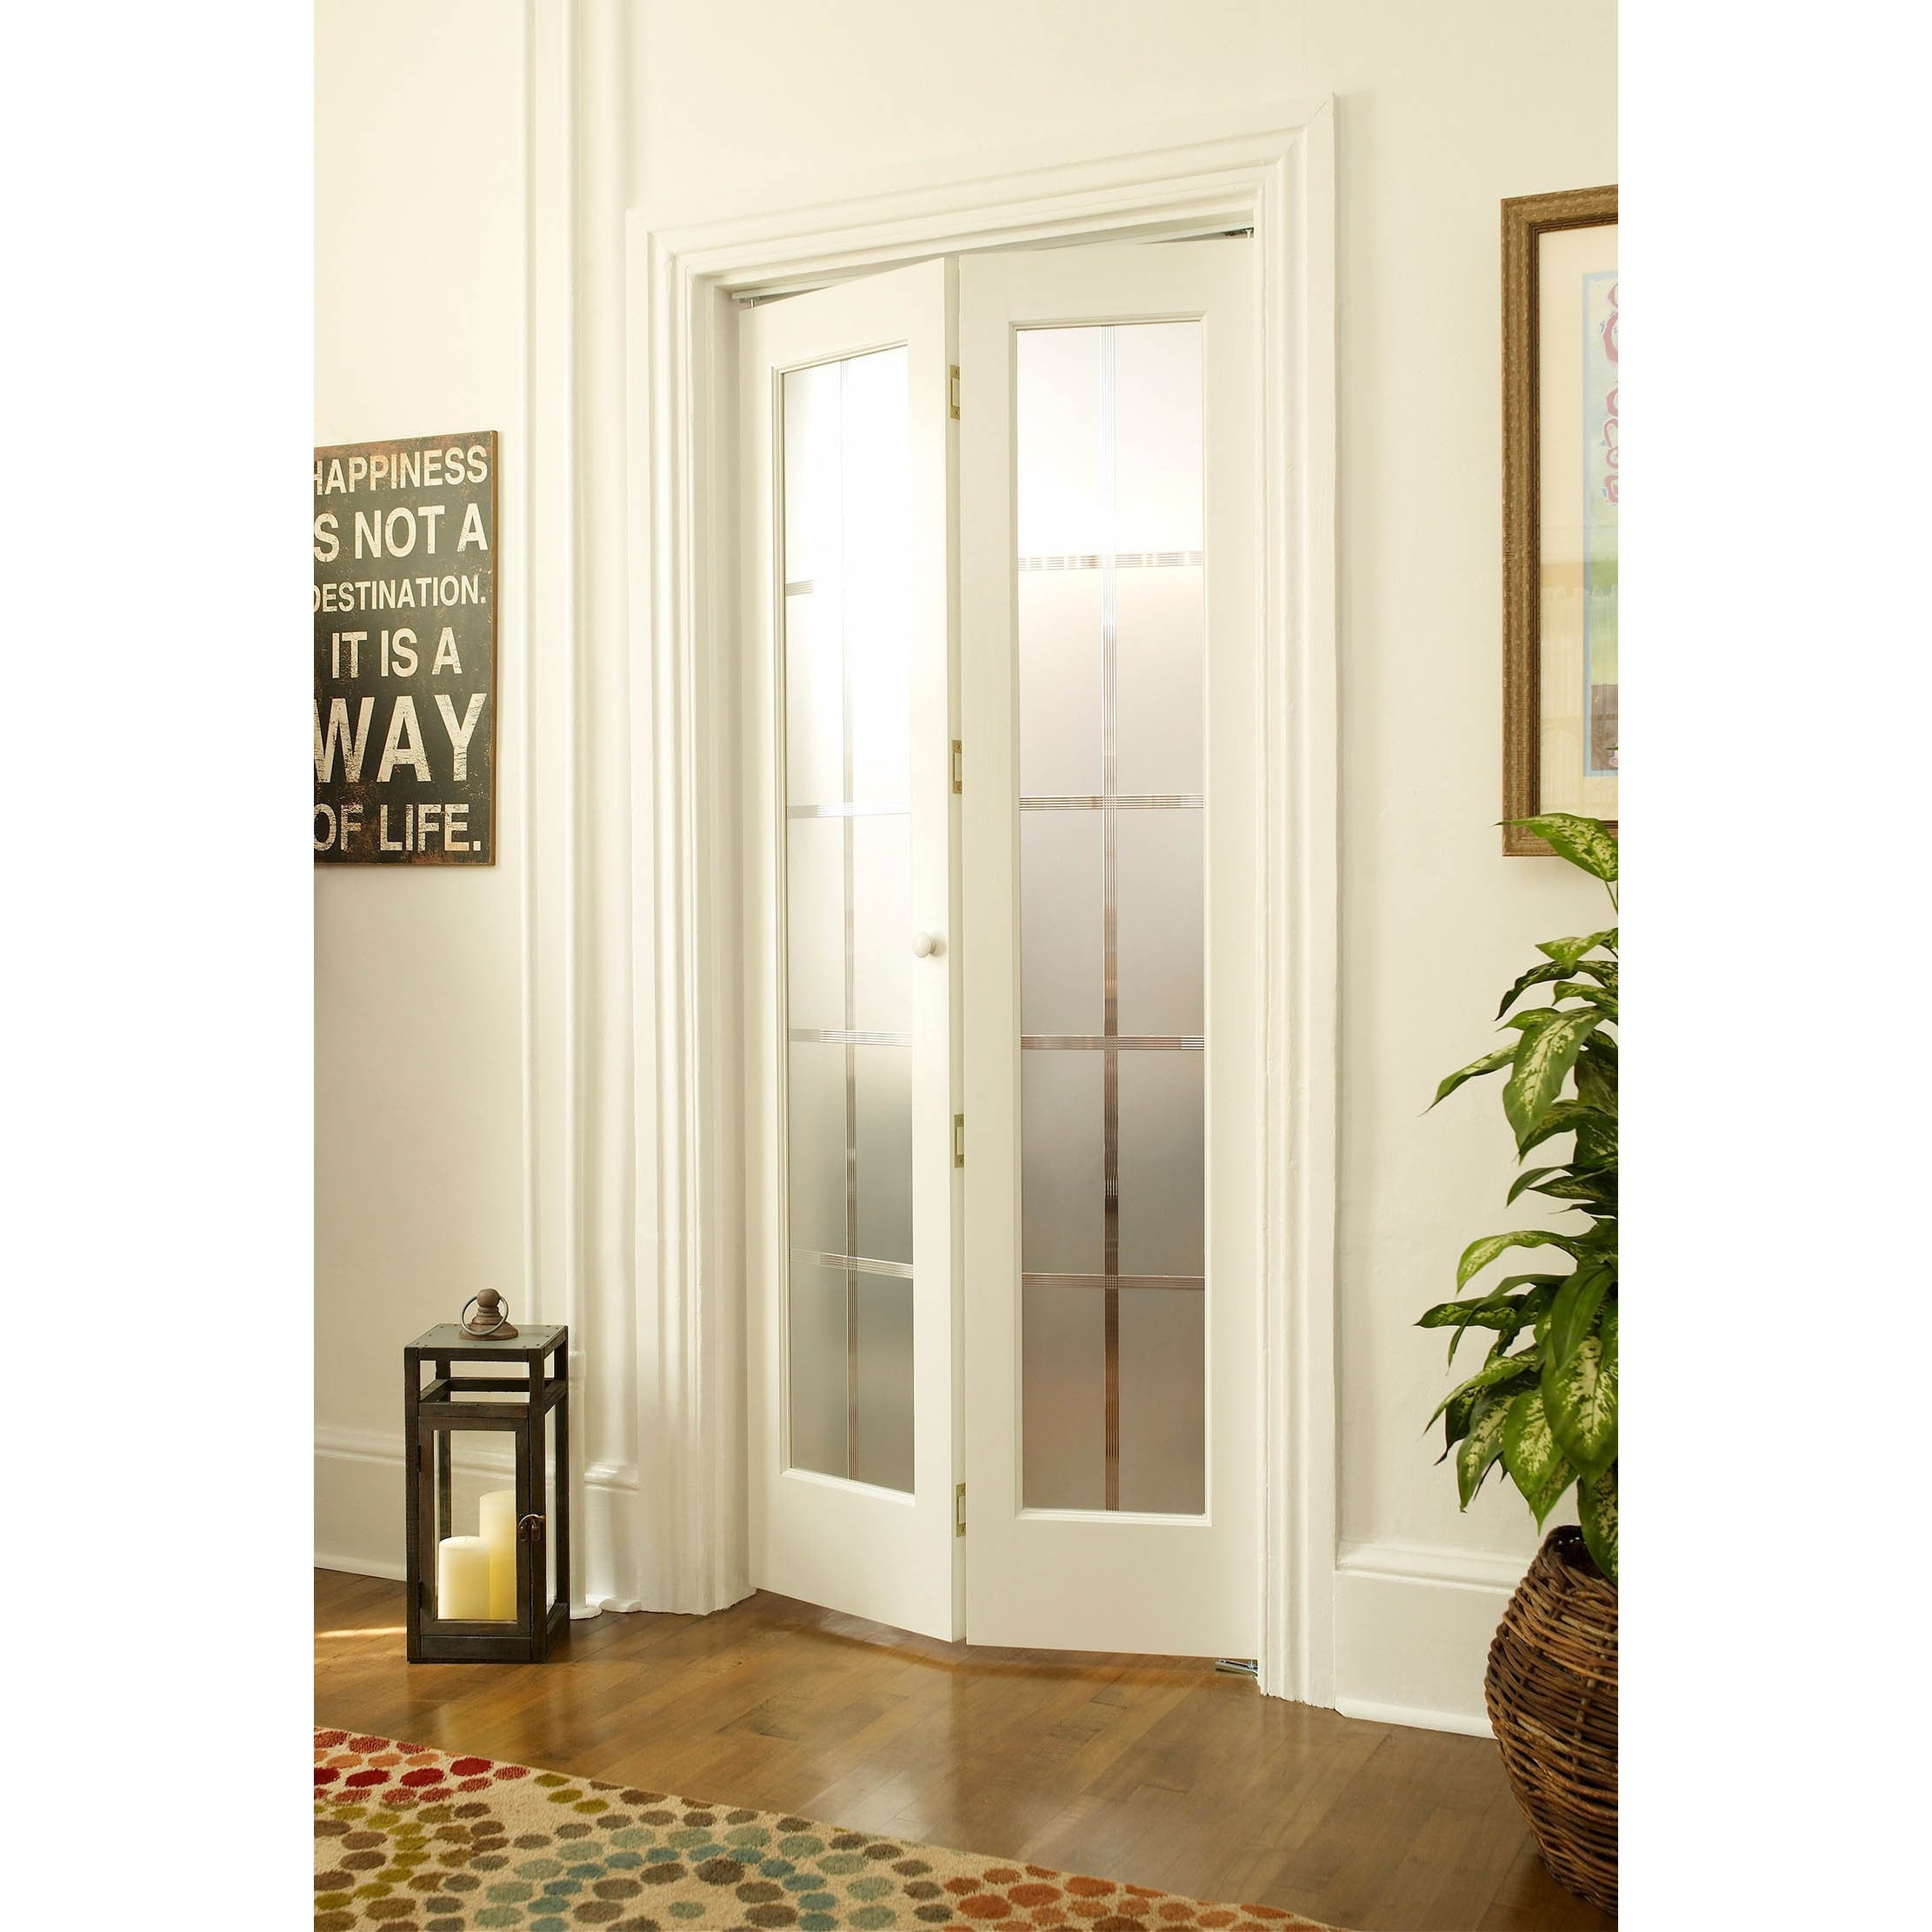 wood doors interior depot glass sizes bifold an attractive screening home ho door gorgeous with enchanting sliding combined designs closet touch five accordion prices